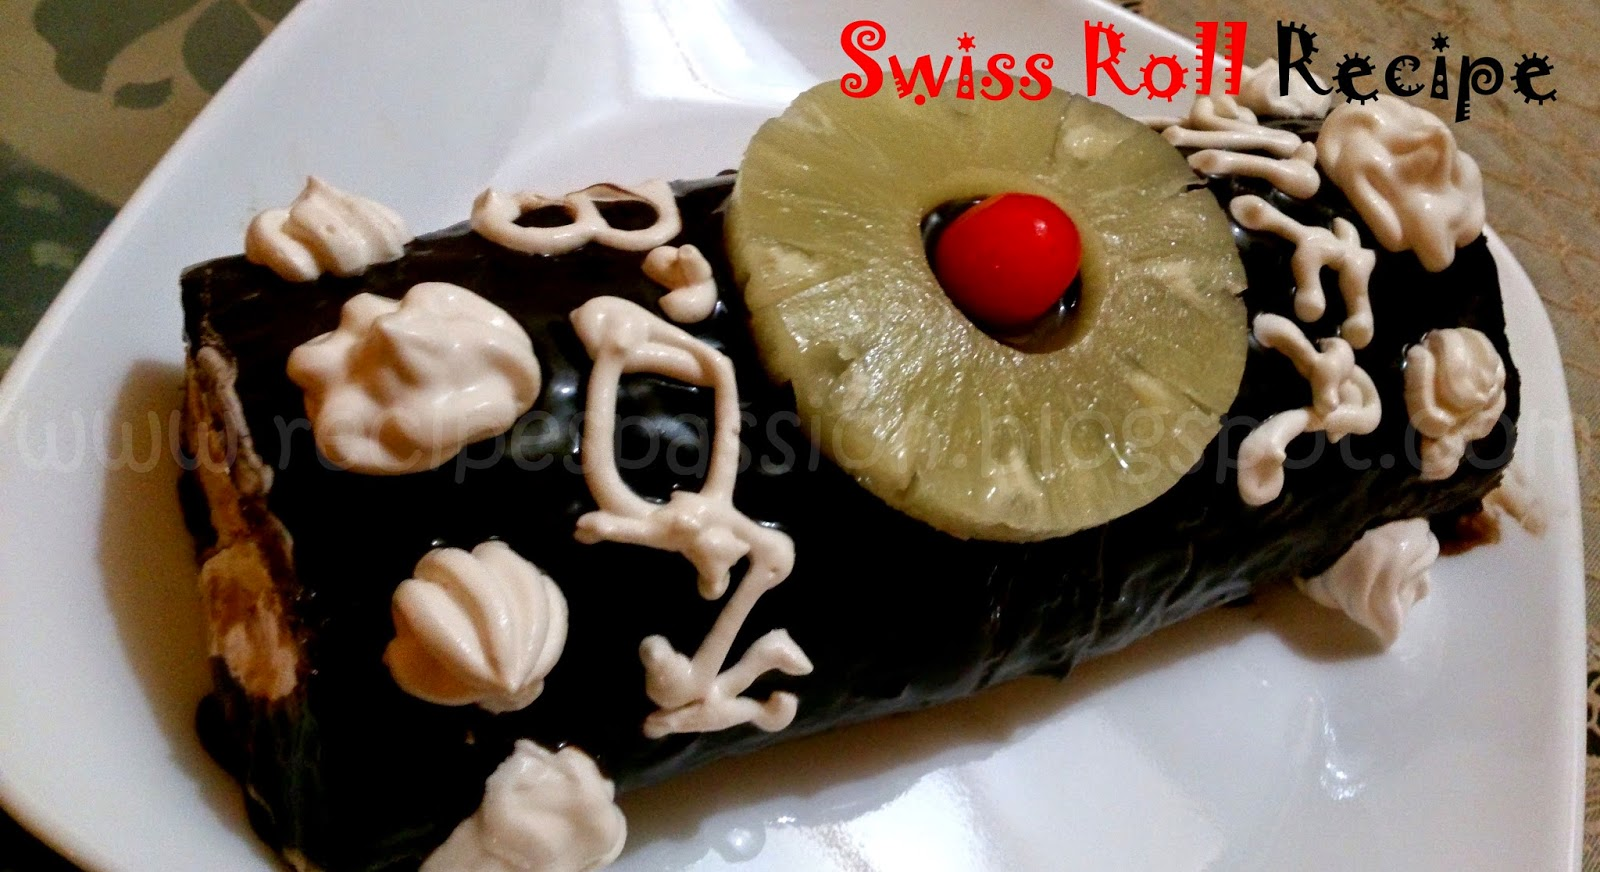 chocolate recipes, swiss roll recipe, chocolate birthday cake recipe, birthday cake recipes, cream, vanilla, simple vanilla recipe, baking